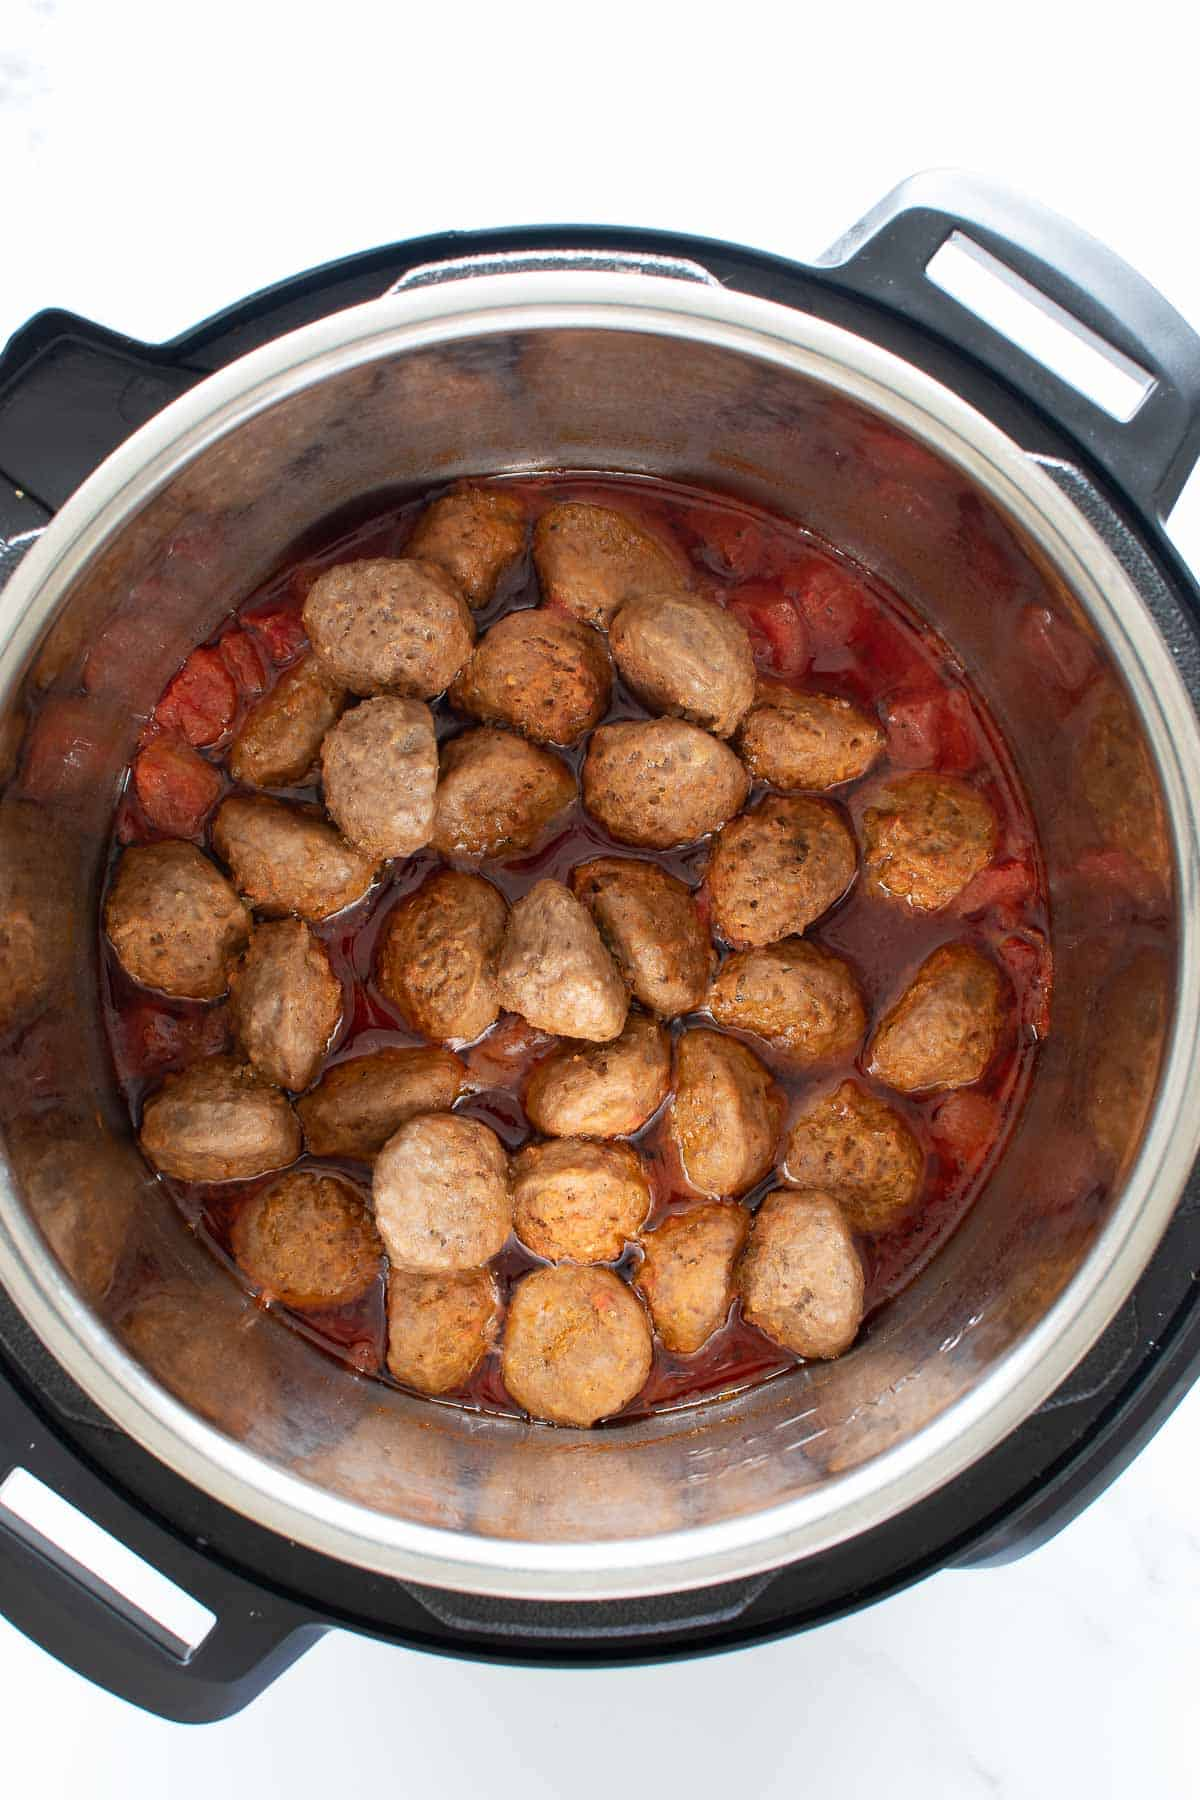 Cooked meatballs in instant pot.